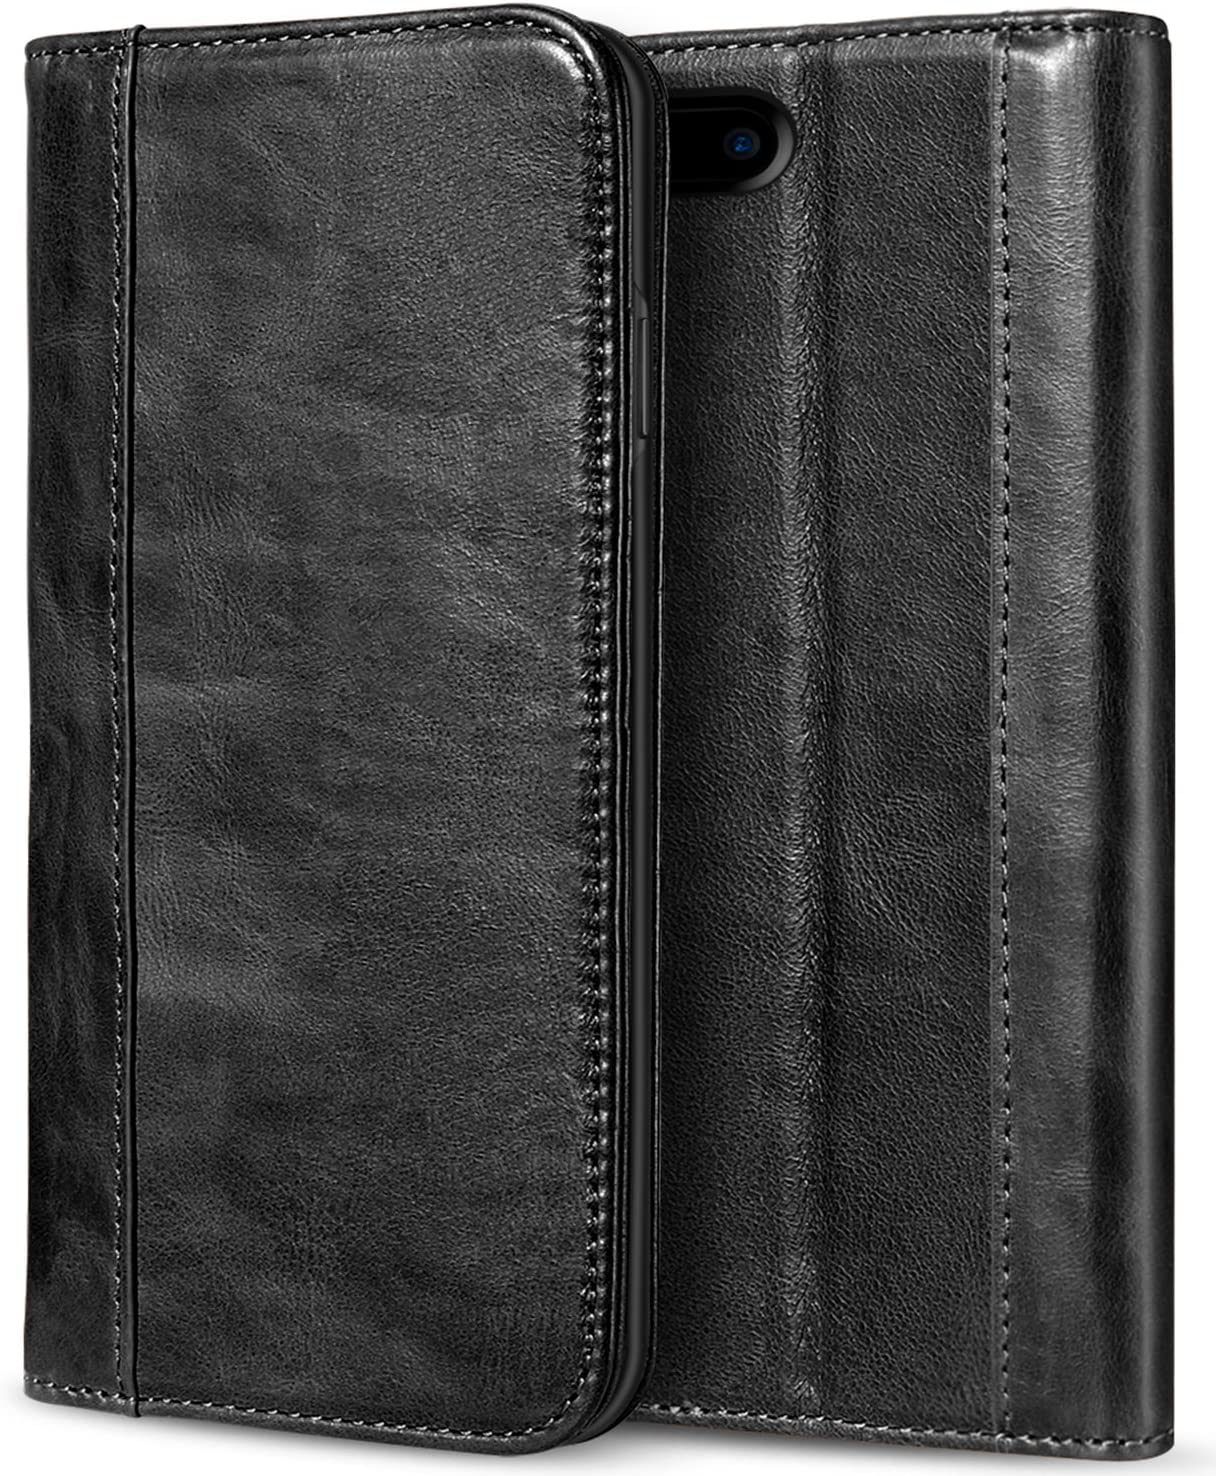 ProCase iPhone 8 Plus 7 Plus Genuine Leather Case, Wallet Folding Flip Case with Kickstand Card Slots Magnetic Closure Protective Cover for Apple iPhone 8 Plus/iPhone 7 Plus -Black